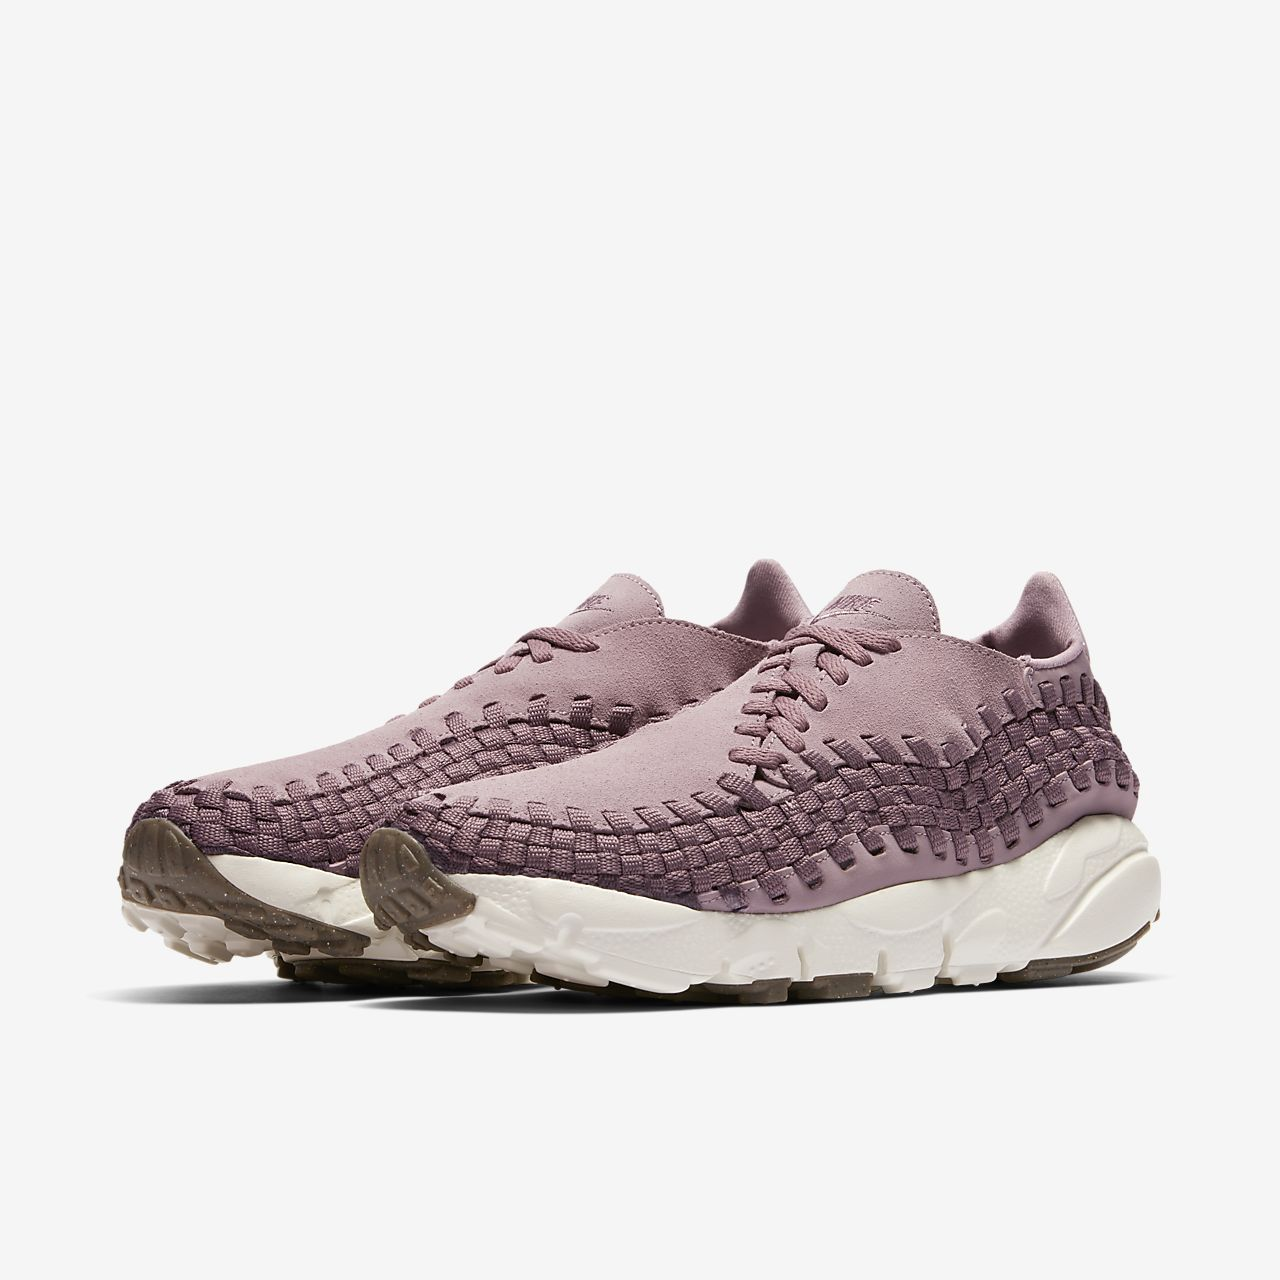 Nike Air Footscape Woven Damenschuh - Pink